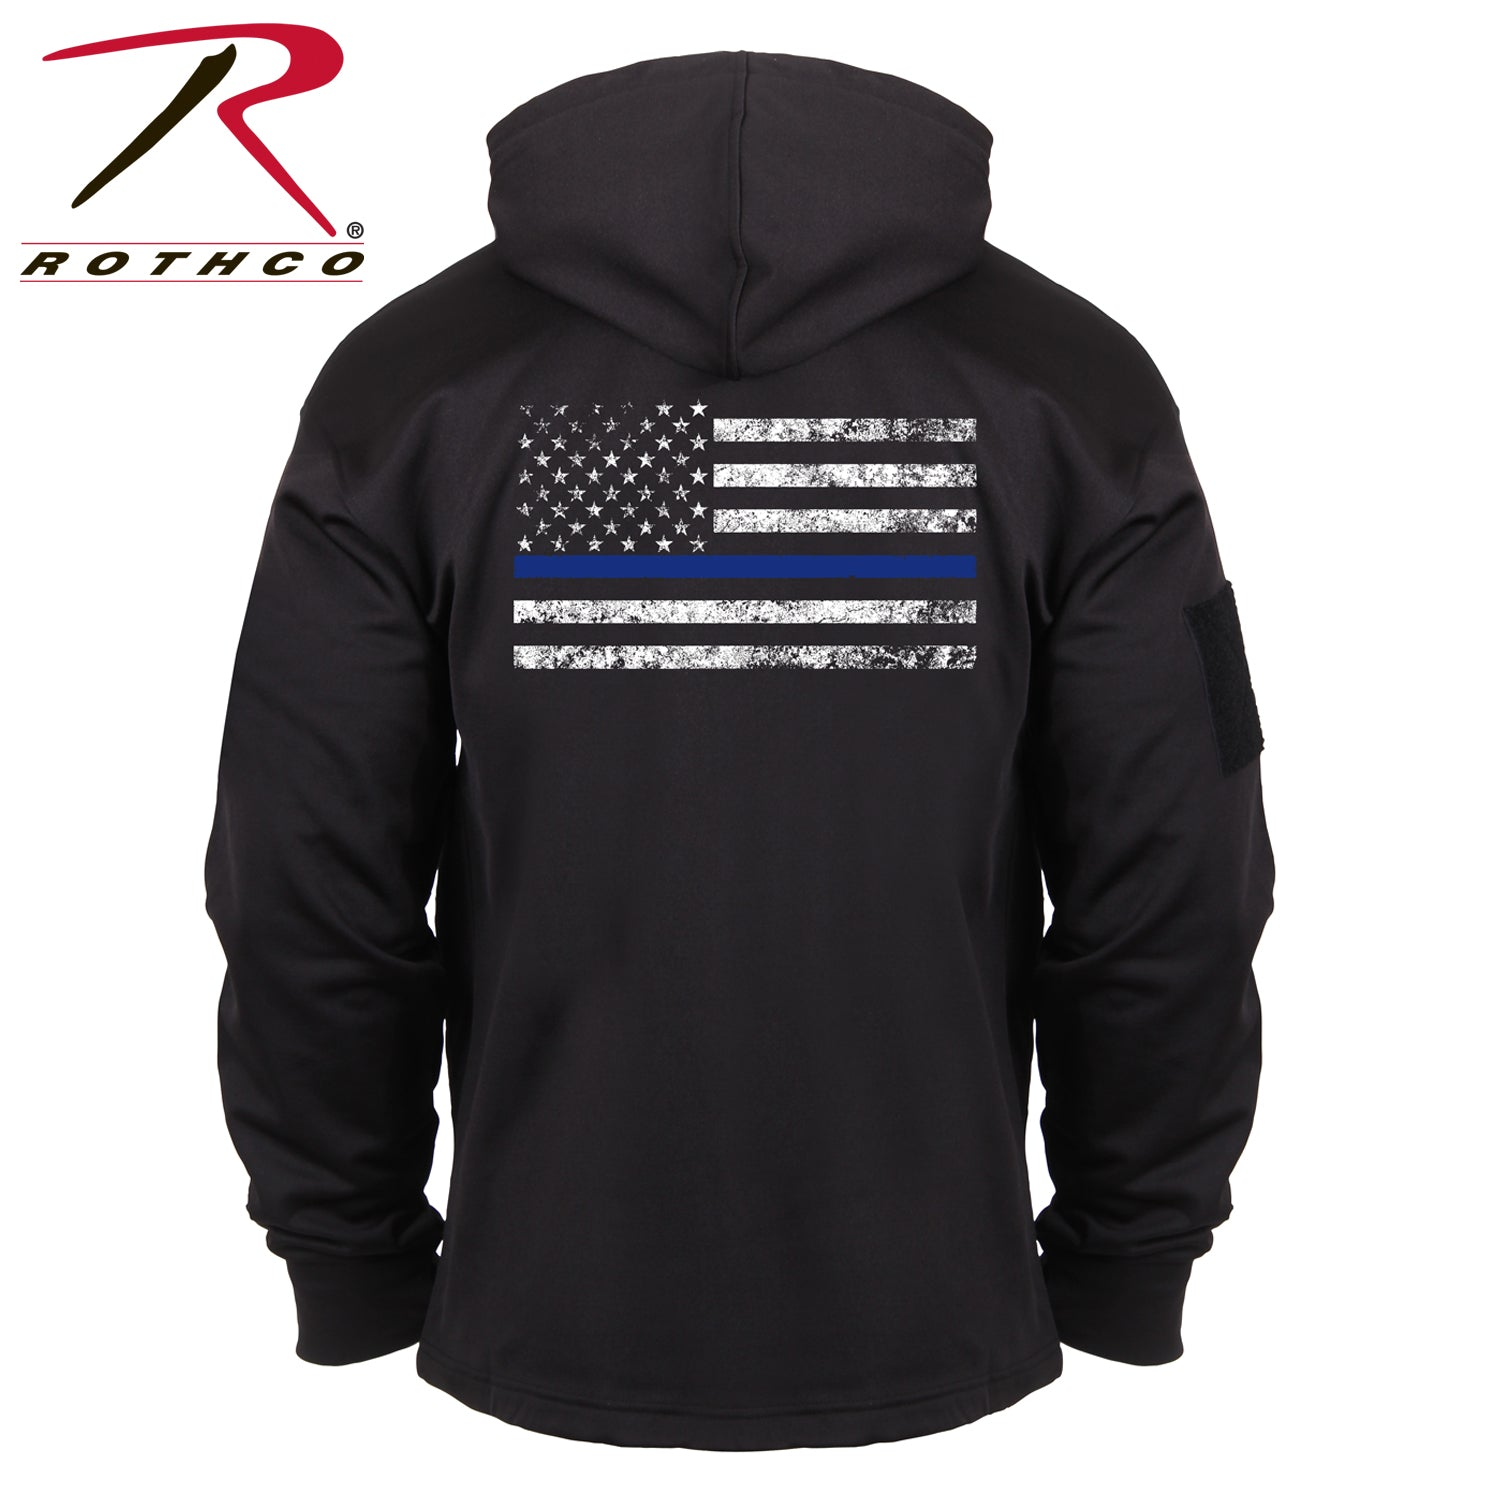 Rothco Thin Blue Line Concealed Carry Hoodie - red-diamond-uniform-police-supply